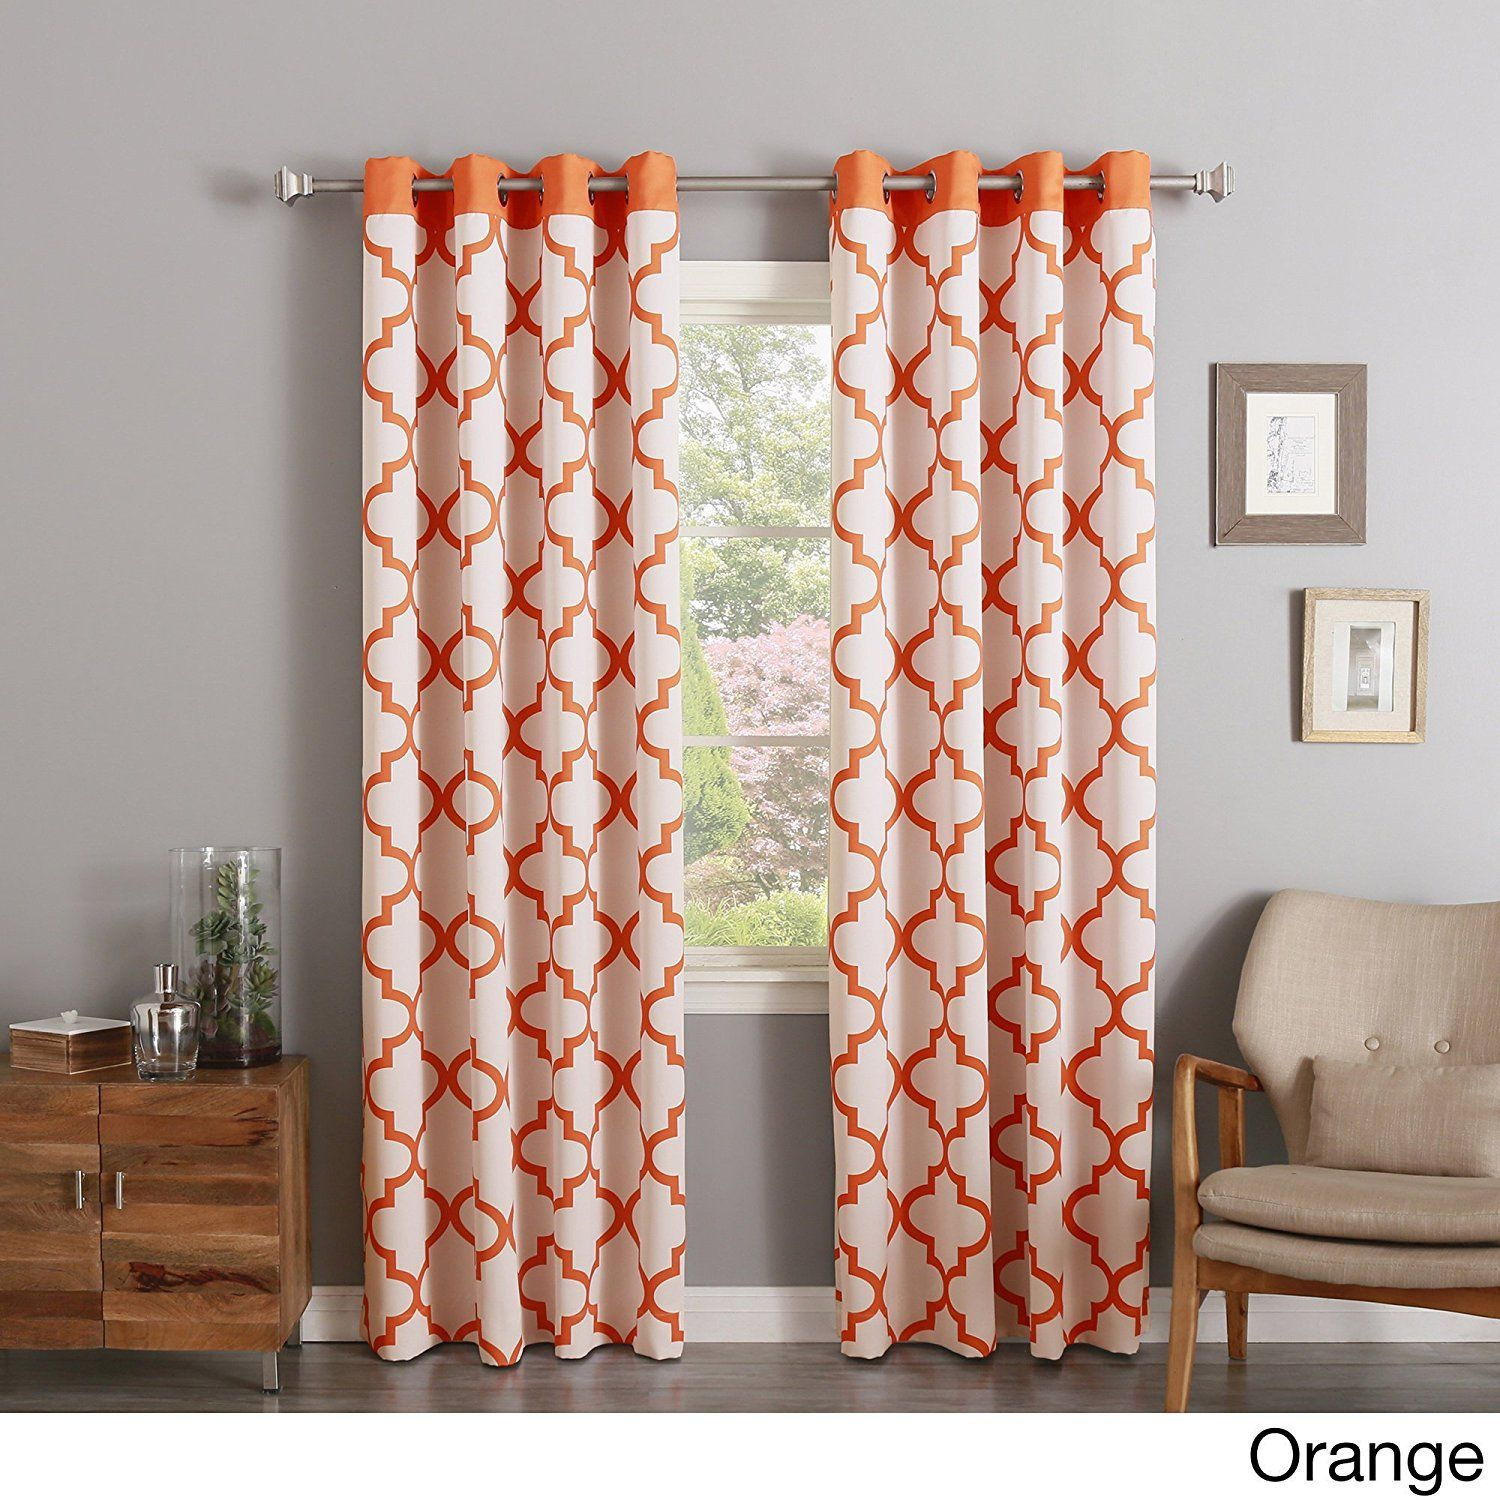 impressive curtainsteal walmart curtains trellis image of patterned teal concept size com curtain full kitchen pattern